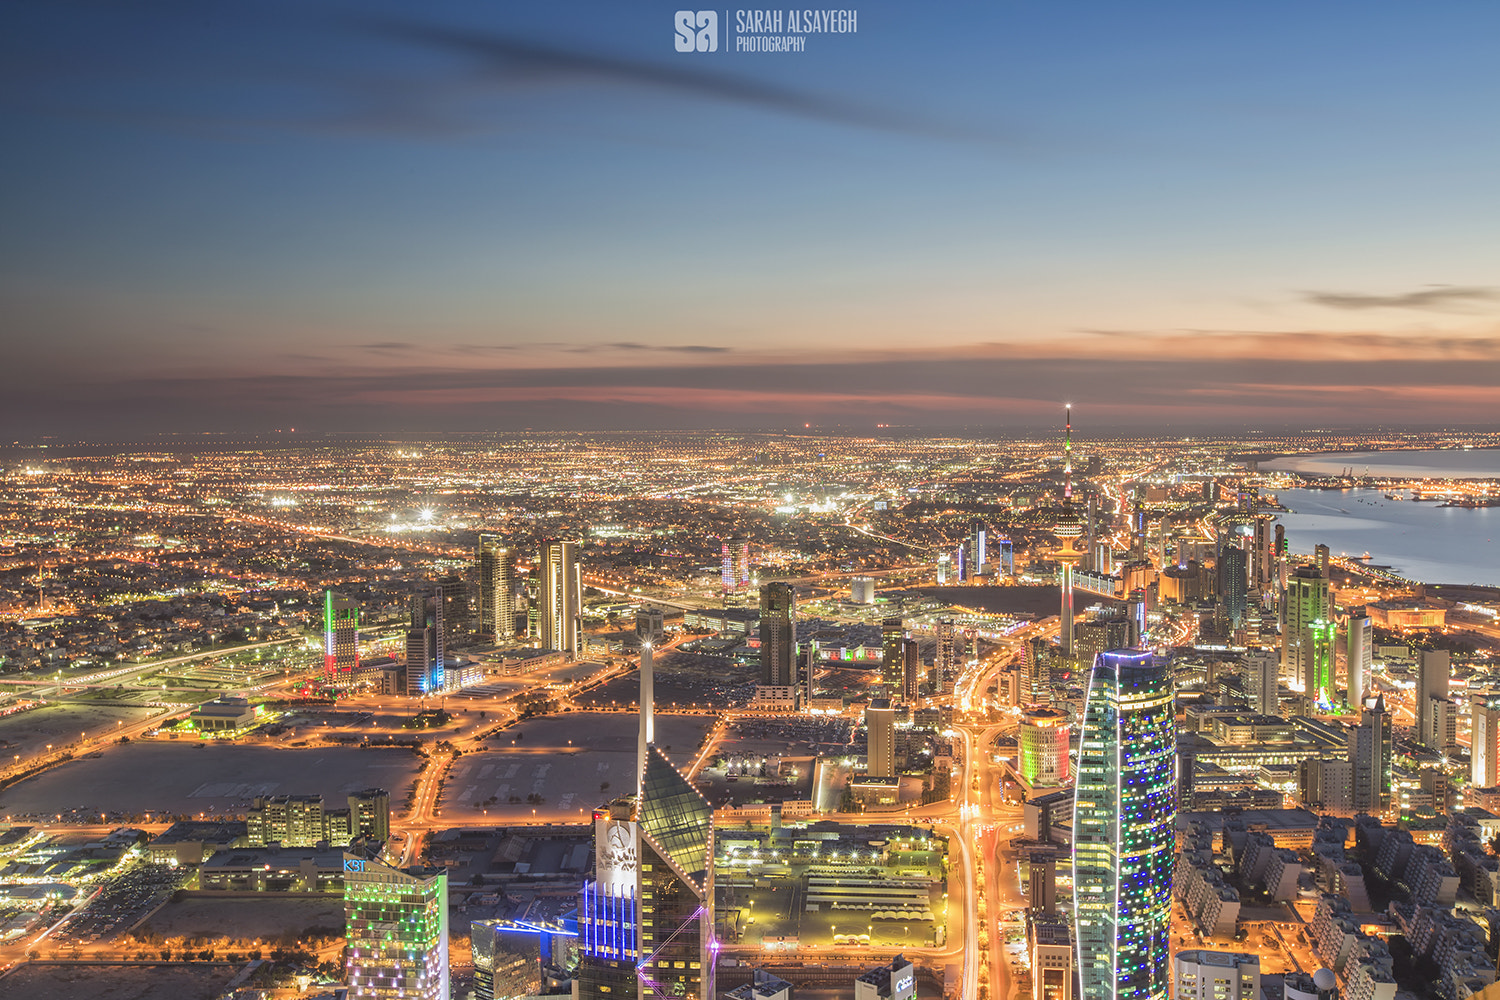 an overview of kuwait Kuwait - market overviewkuwait - market overview discusses key economic indicators and trade statistics, which countries are dominant in the market, the us market share, the political.